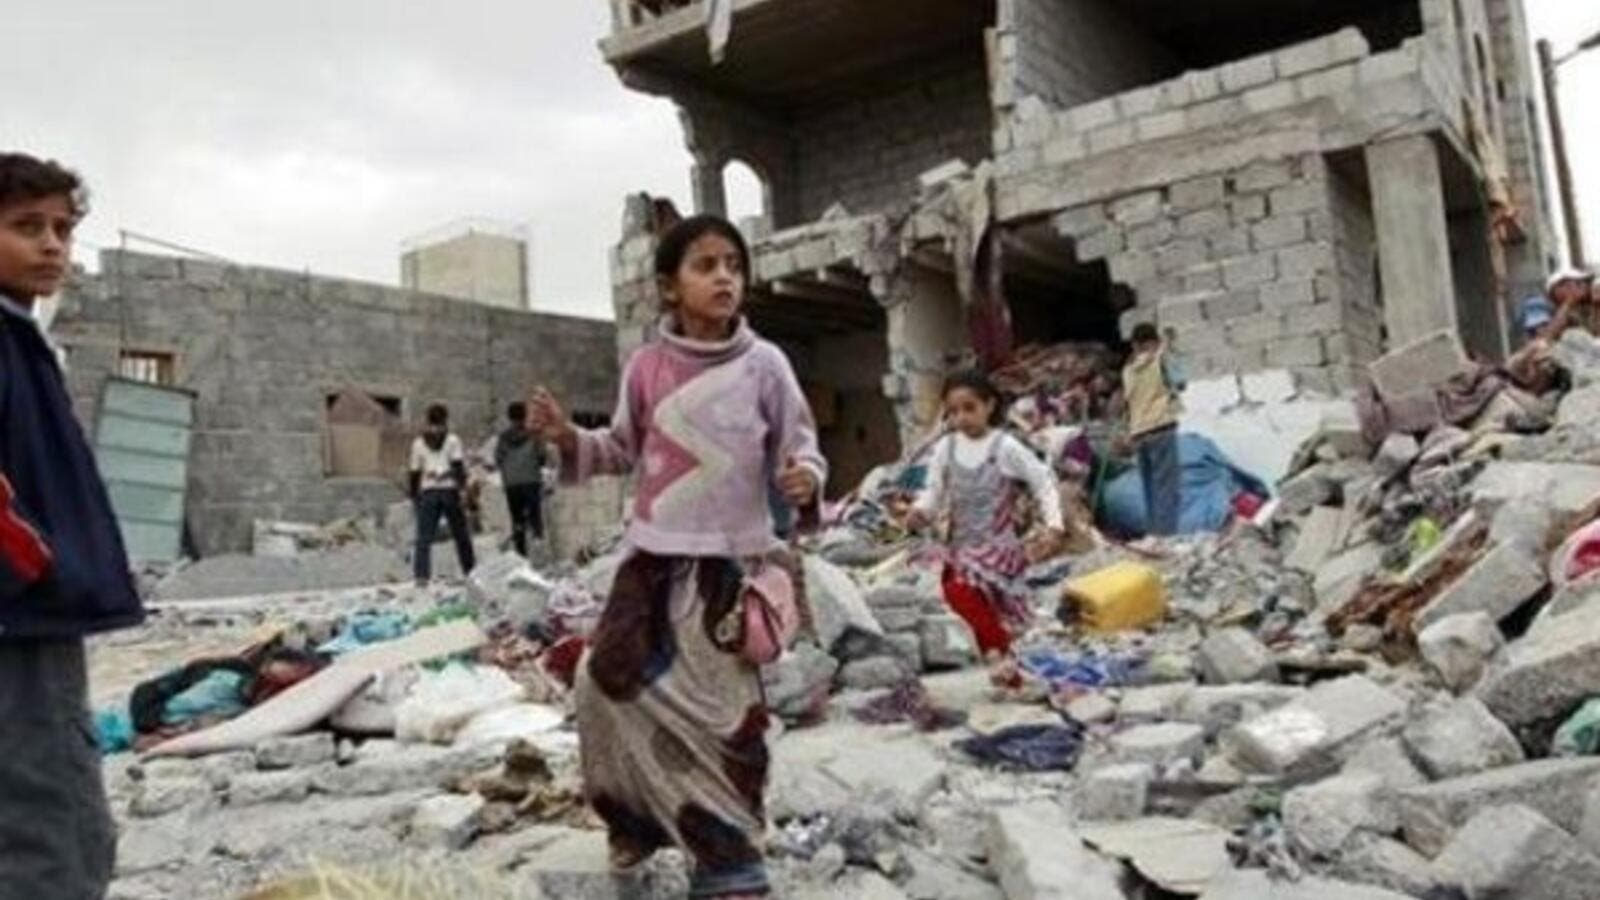 Children Stand on a bombed building in Yemen (AFP/File Photo)